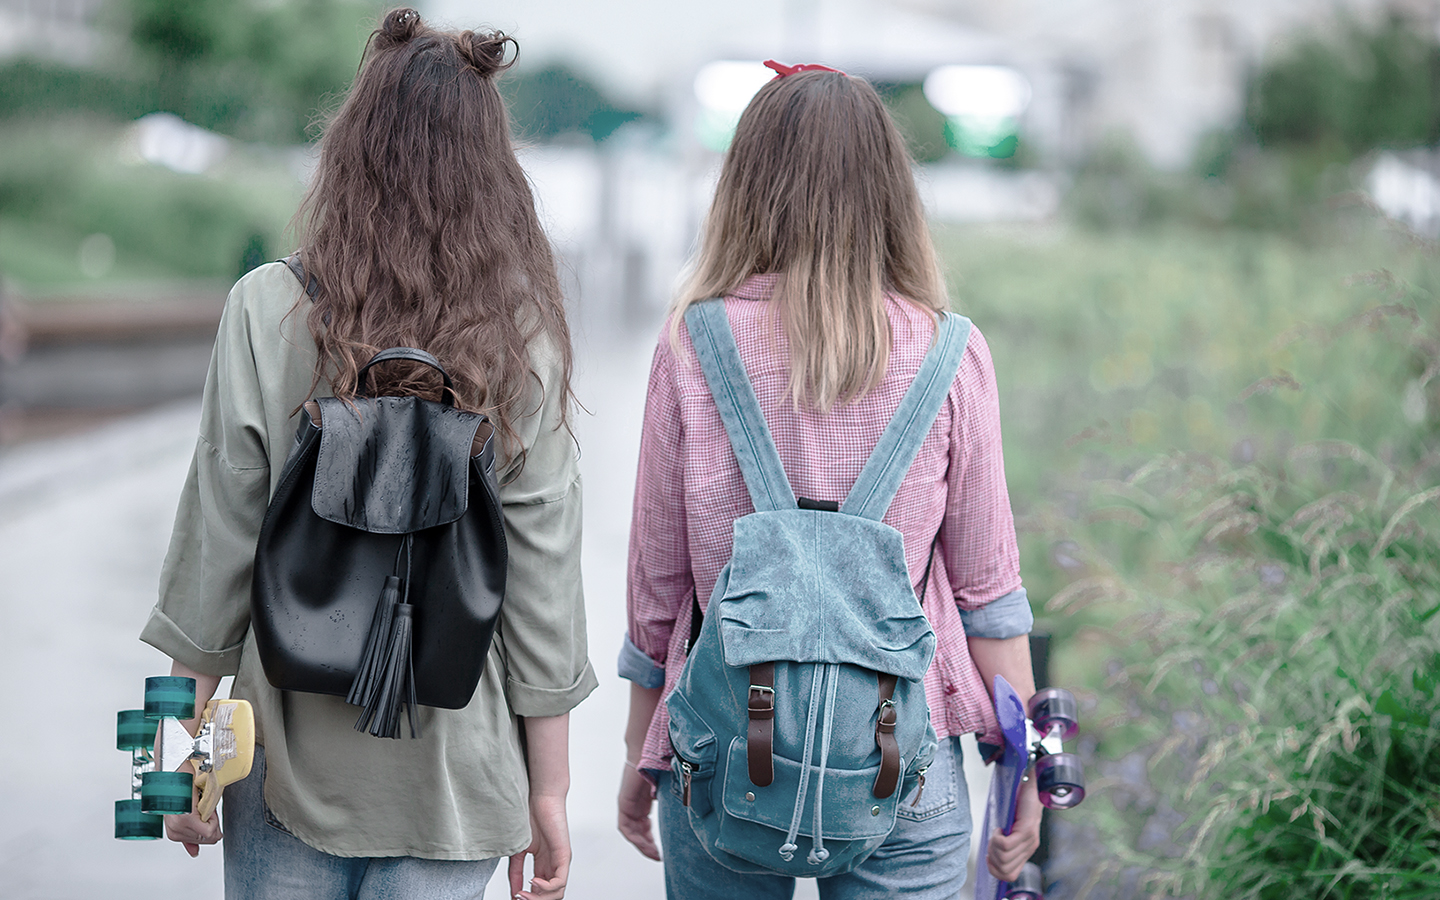 Two teenage girls carrying skateboards